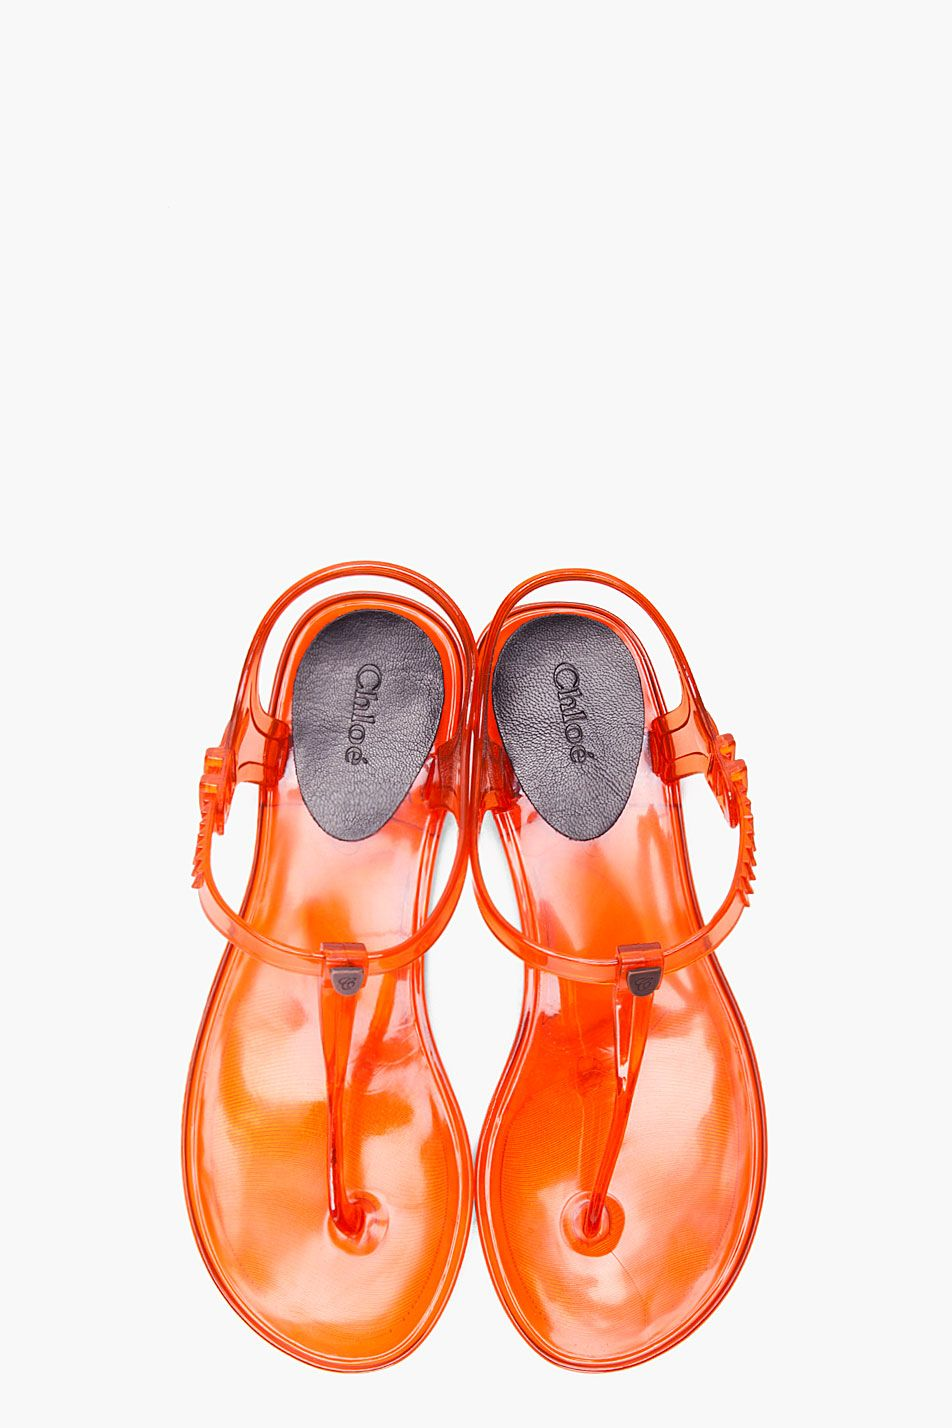 7ec36abef57b Chloe jelly sandals